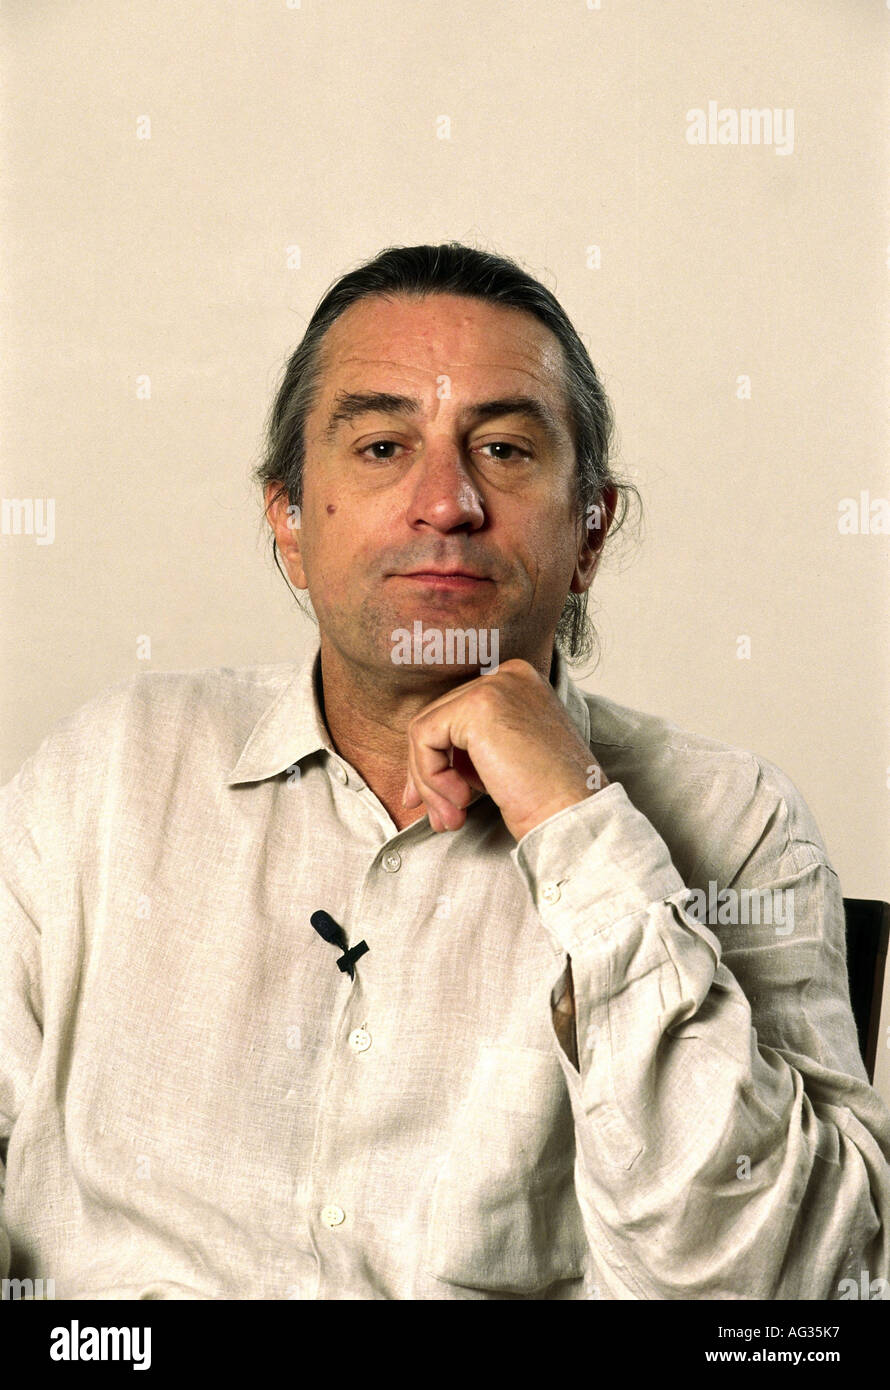 Niro, Robert de, * 17.8.1943, American actor, portrait, 1990s, 90s, Additional-Rights-Clearances-NA - Stock Image